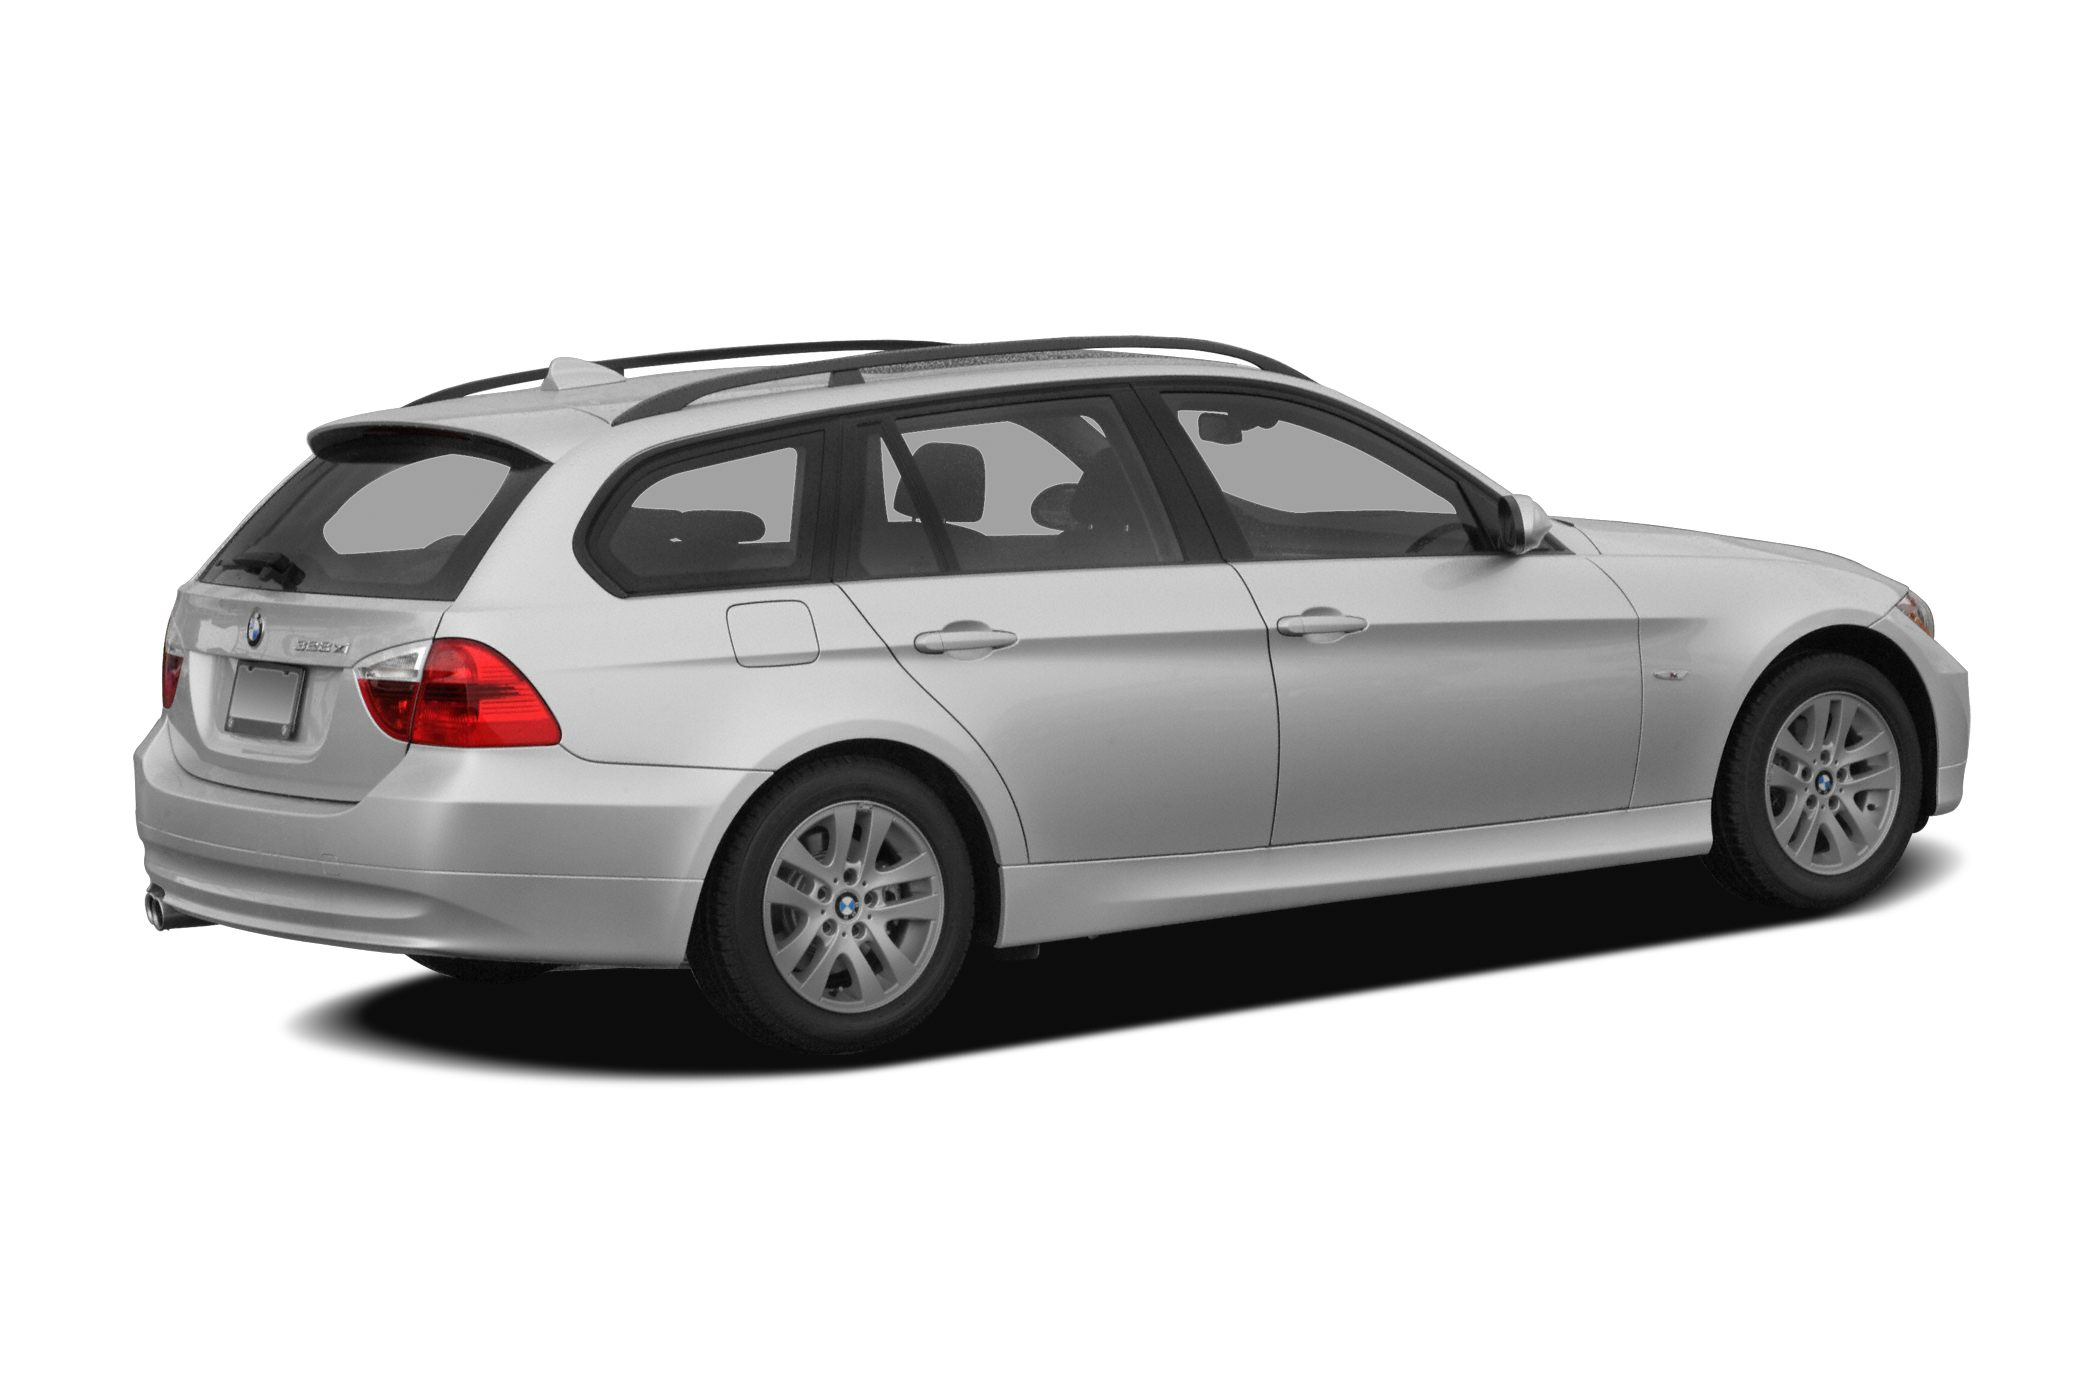 2006 BMW 325 XiT Wagon for sale in Englewood for $13,995 with 81,375 miles.